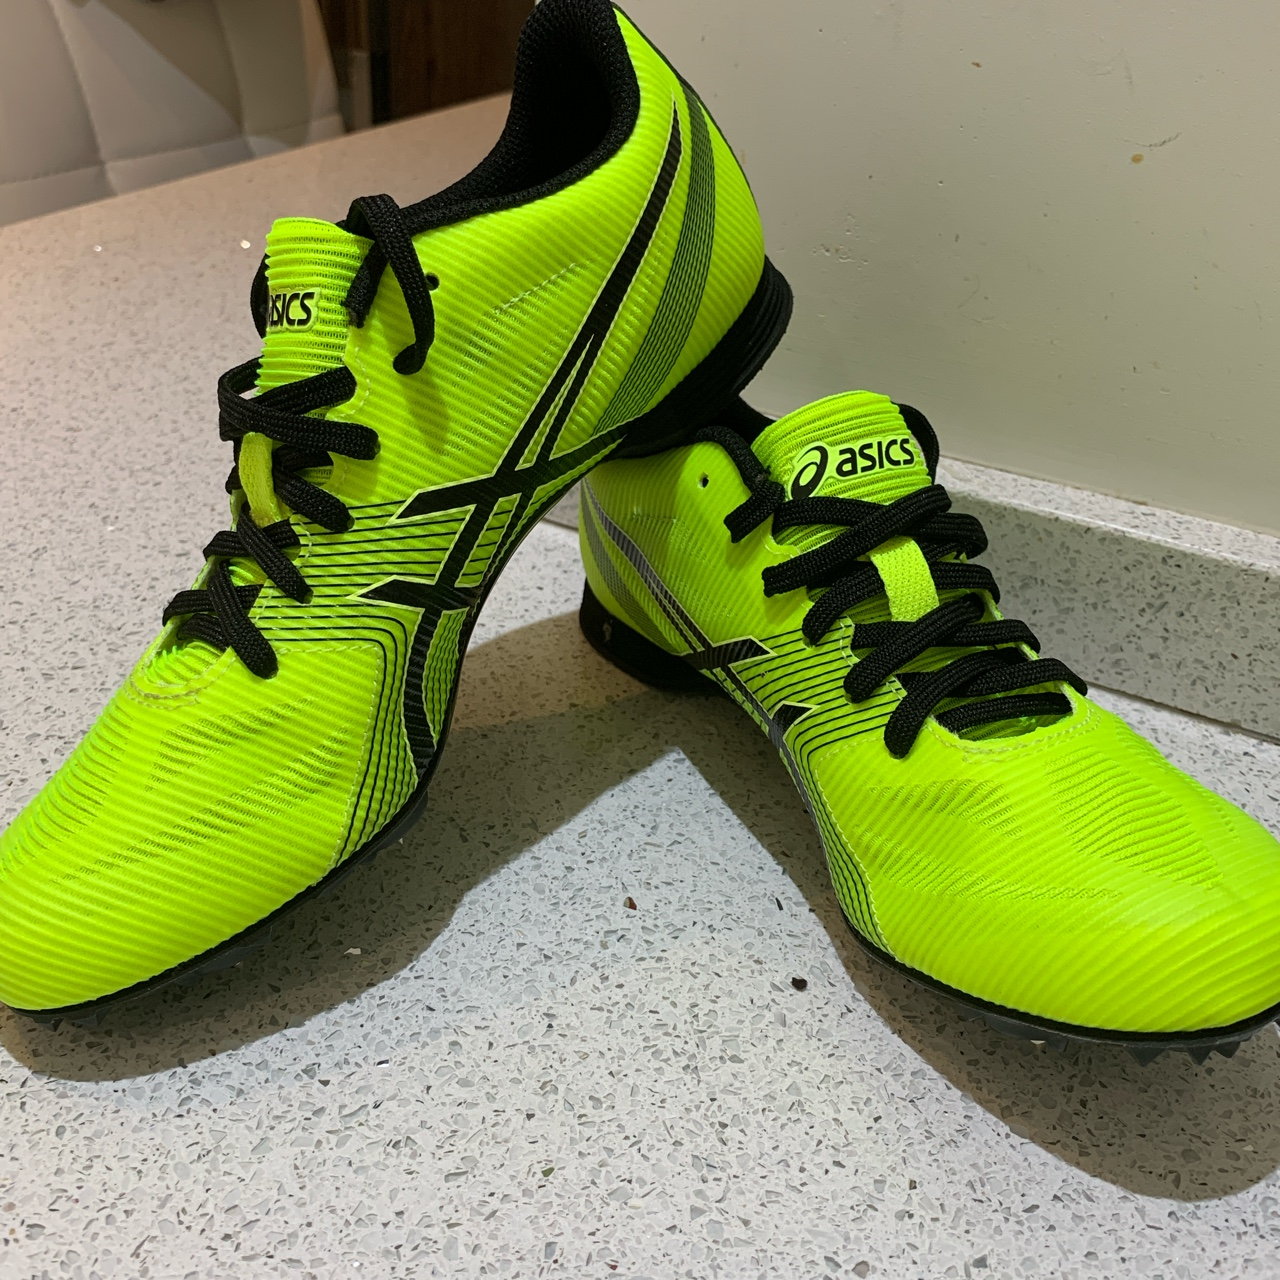 Neon Yellow Asics Track Spikes Trainers